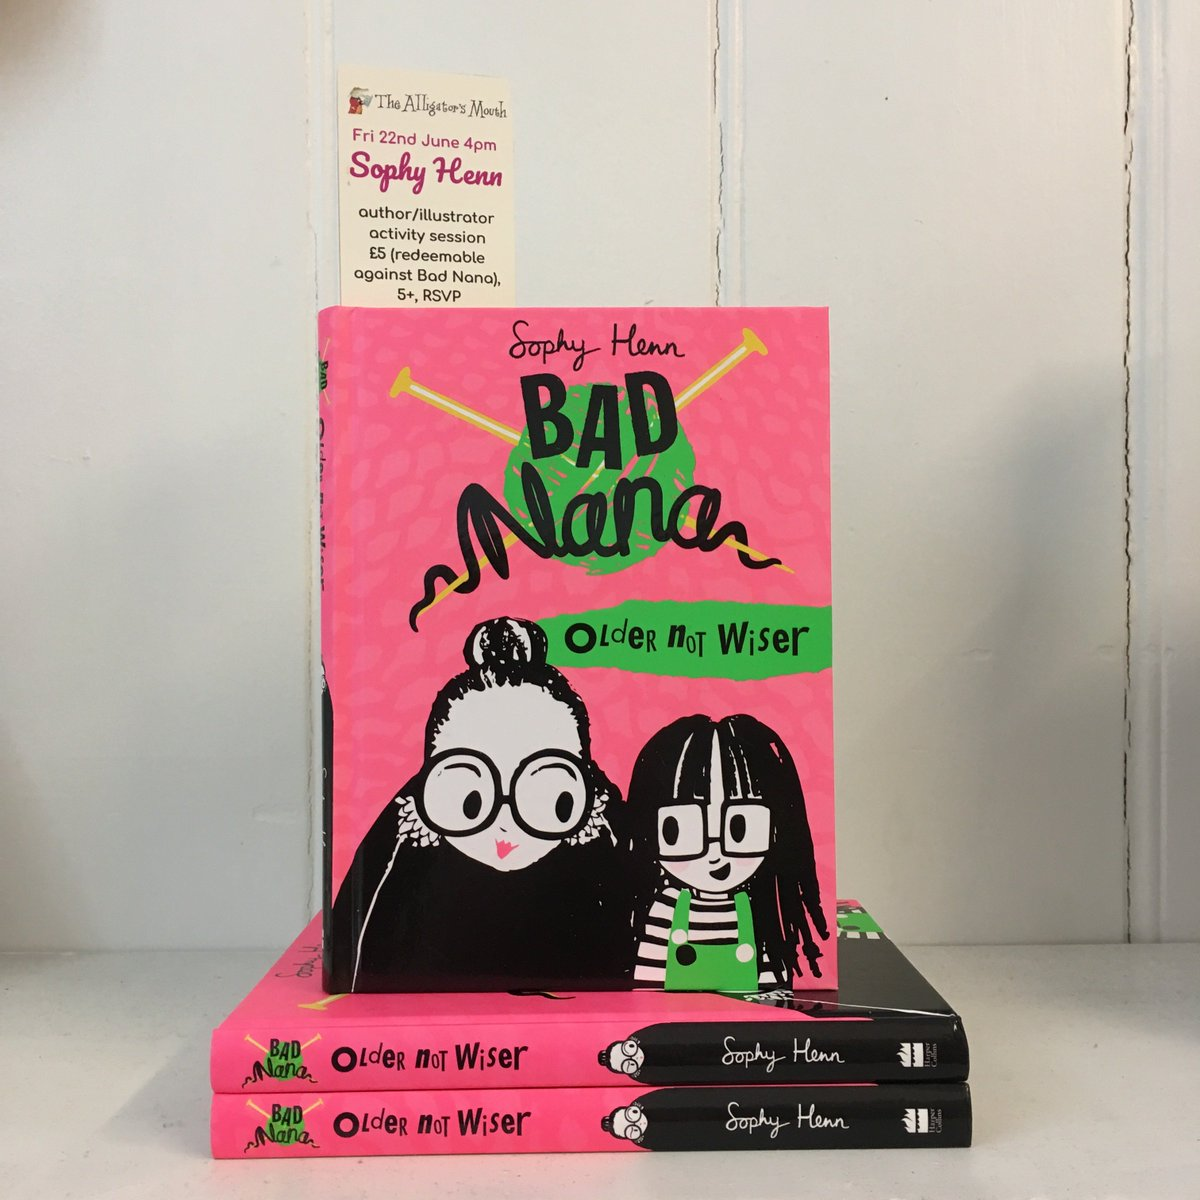 We cant wait for our event with @sophyhenn tomorrow at 4pm - join us for a reading, activity session, cake, and goodie bags to celebrate the fun and vibrant Bad Nana. There are a few spaces left so call 020 8948 6775 or drop by to RSVP immediately. 5+yrs, £5 redeemable.